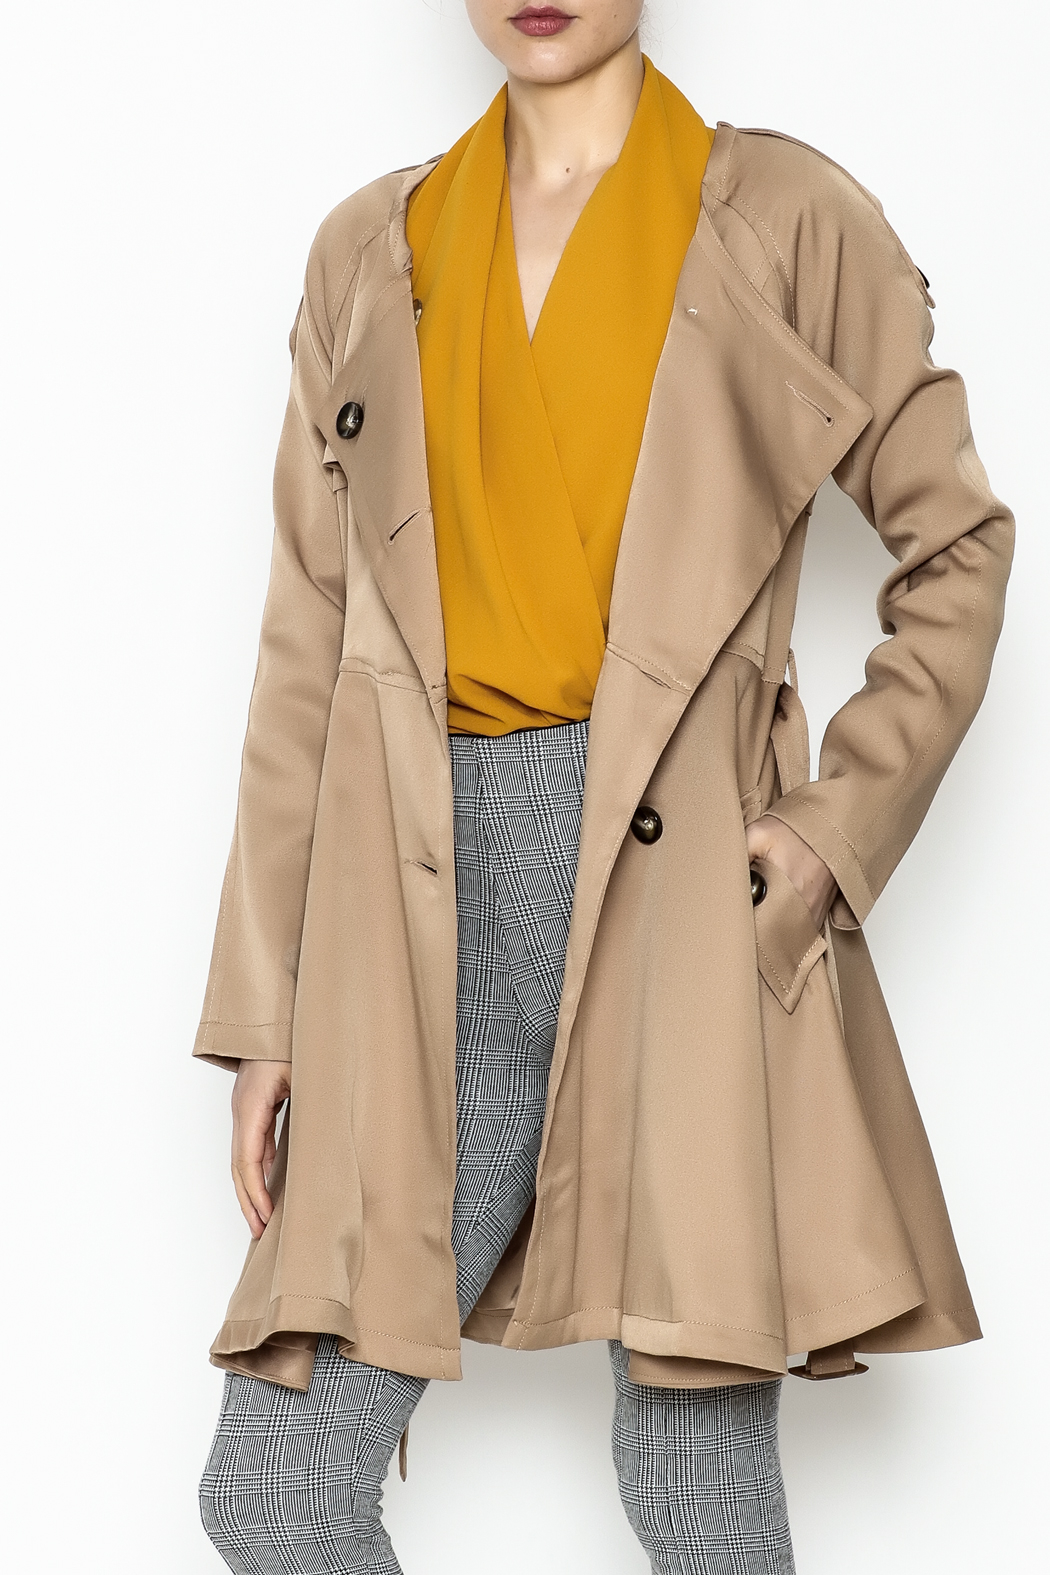 Italiagogo Tan Trench Coat - Front Cropped Image